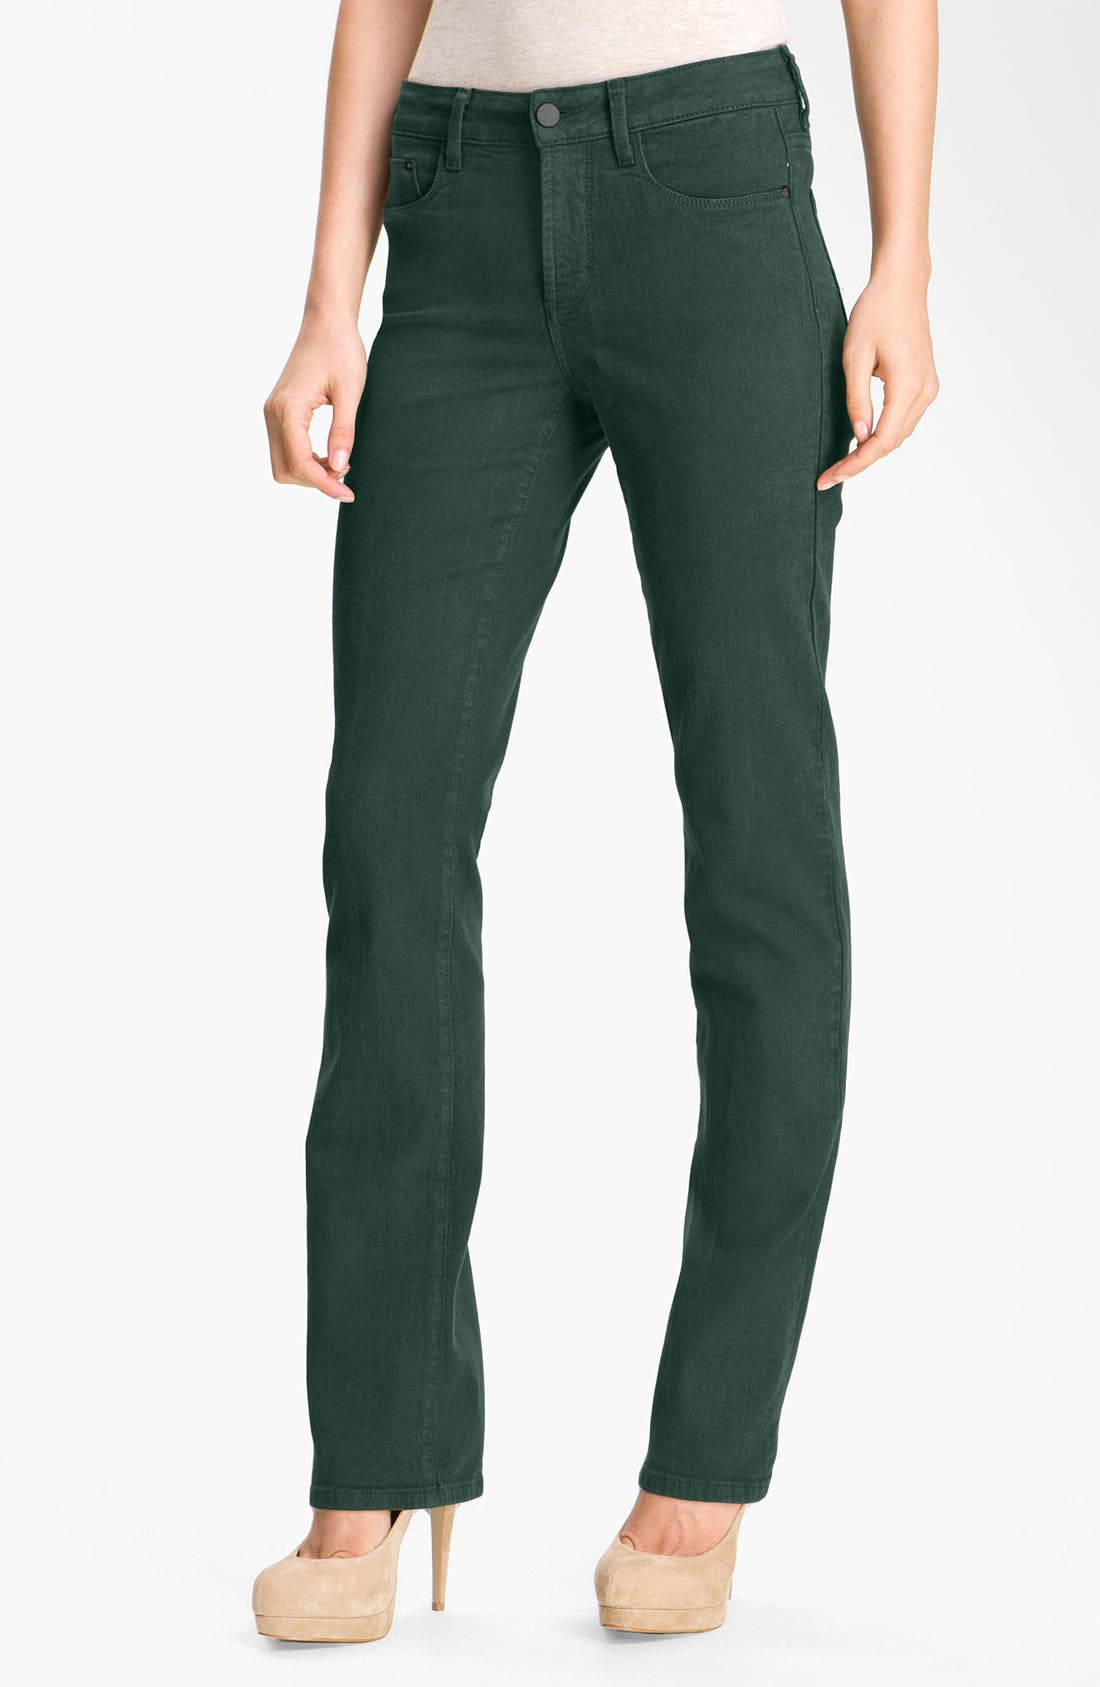 Alternate Image 1 Selected - NYDJ 'Marilyn' Colored Straight Leg Stretch Jeans (Petite)